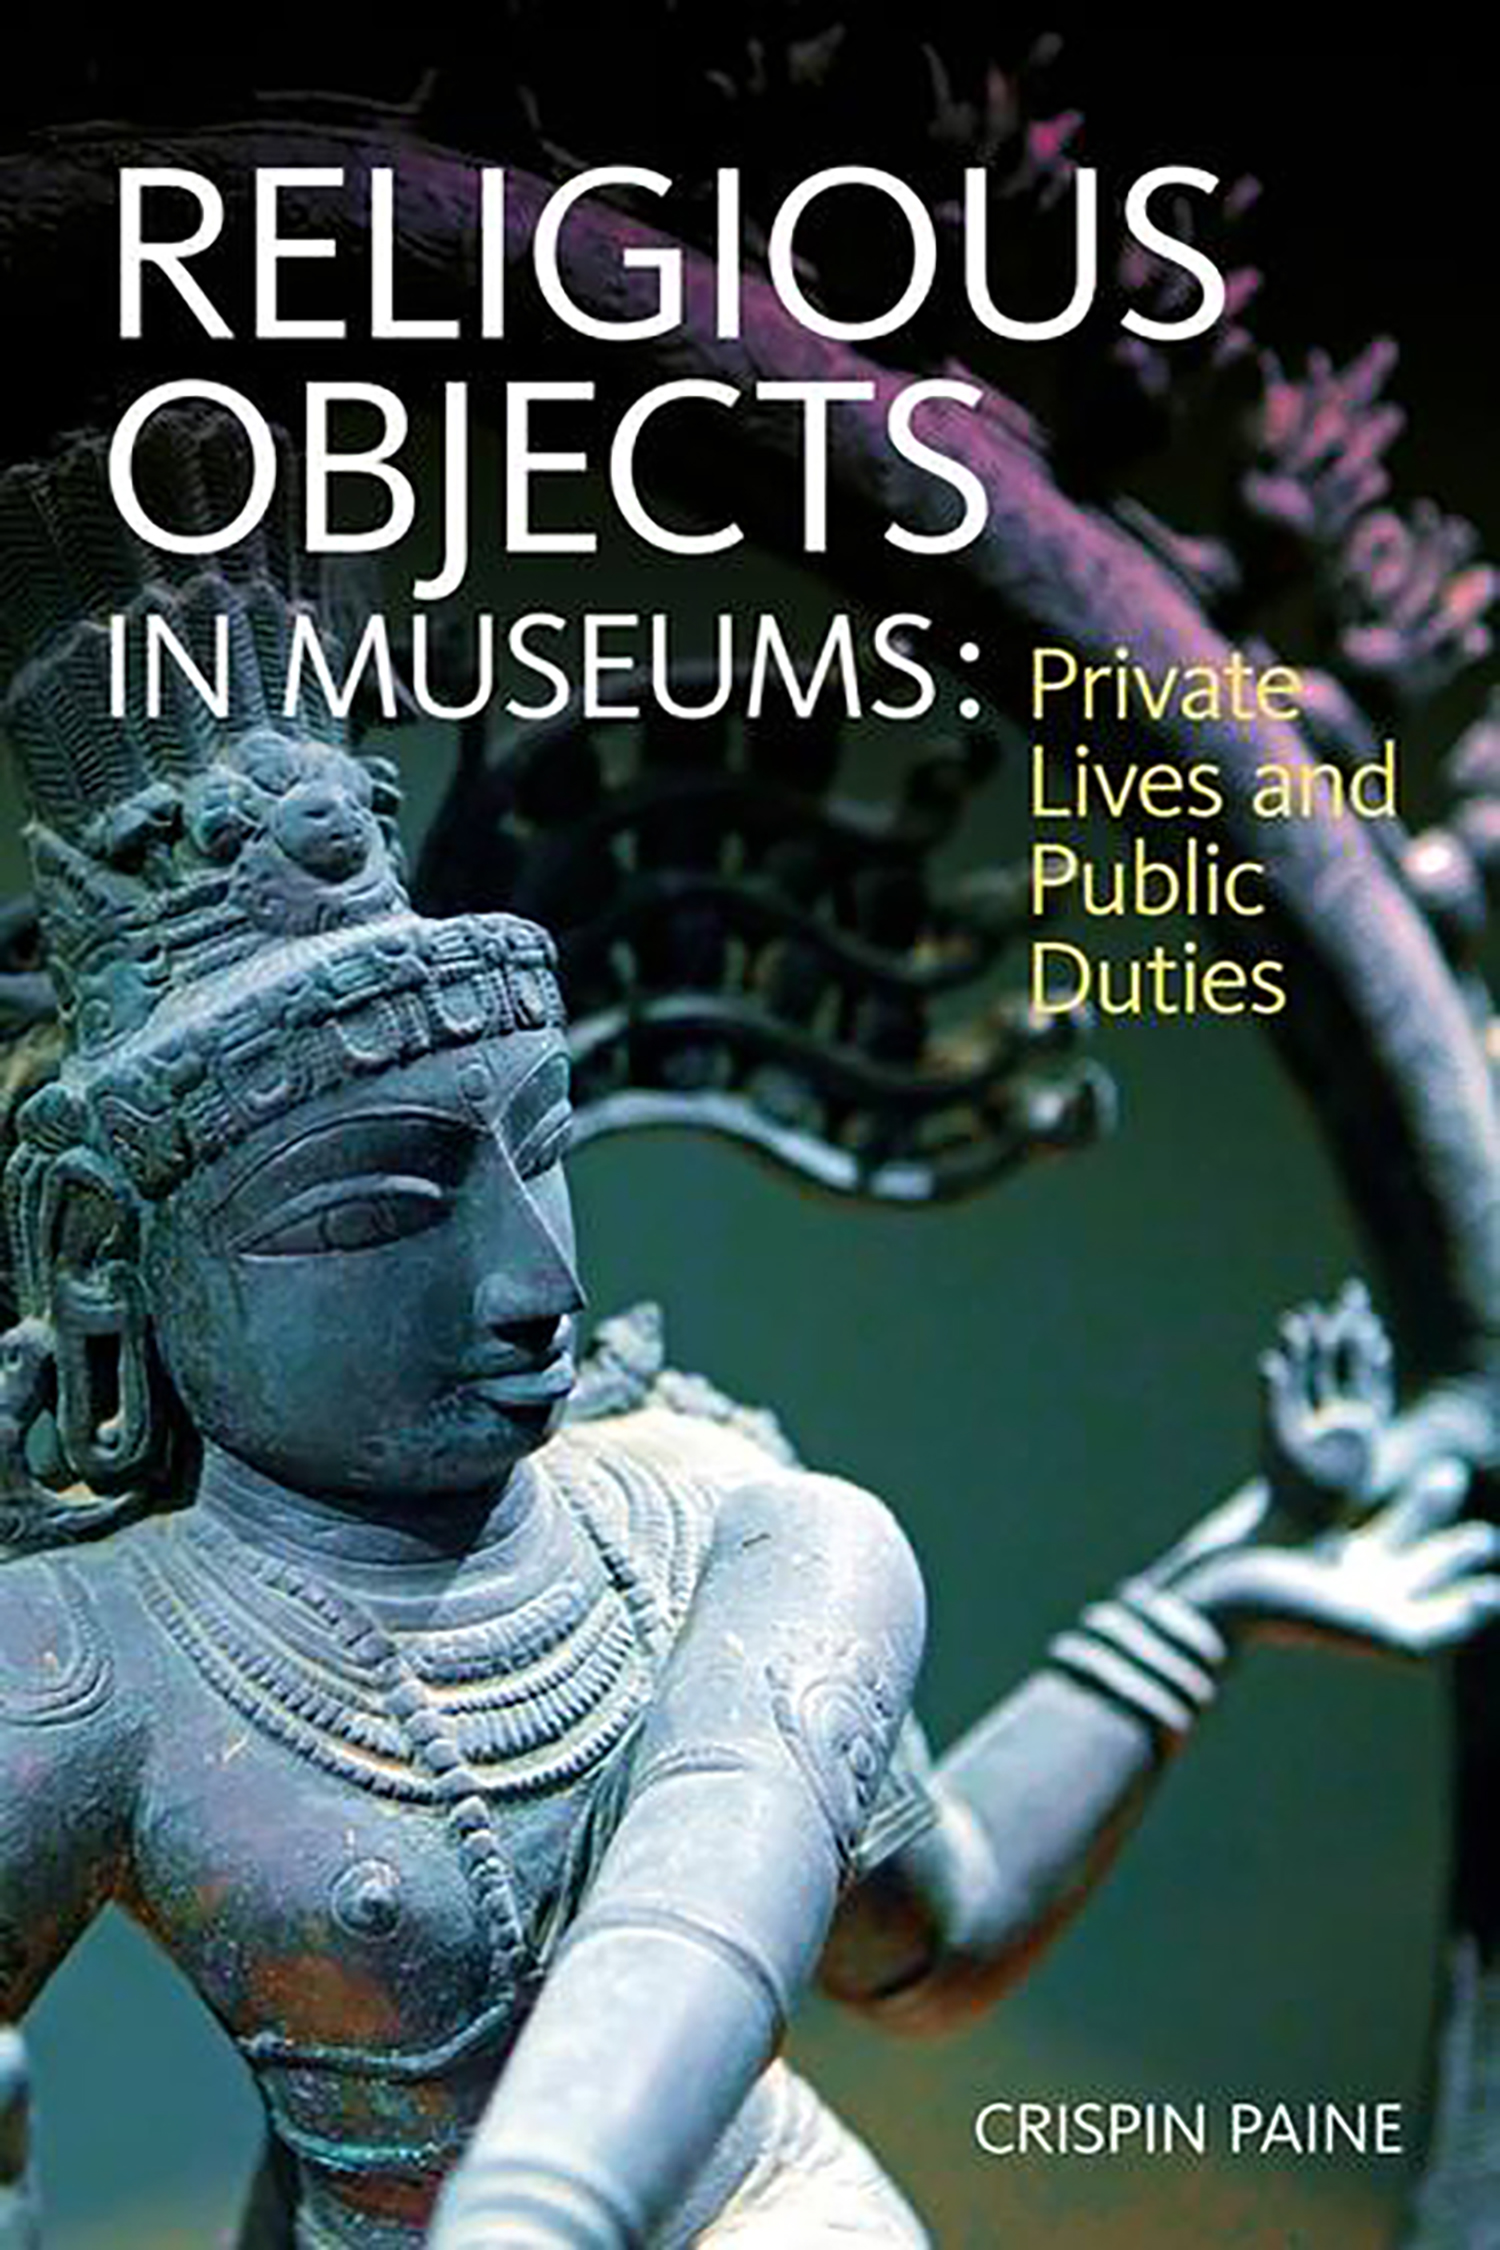 Figure 7: Book cover for  Religious Objects in Museums: Private Lives and Public Duties.